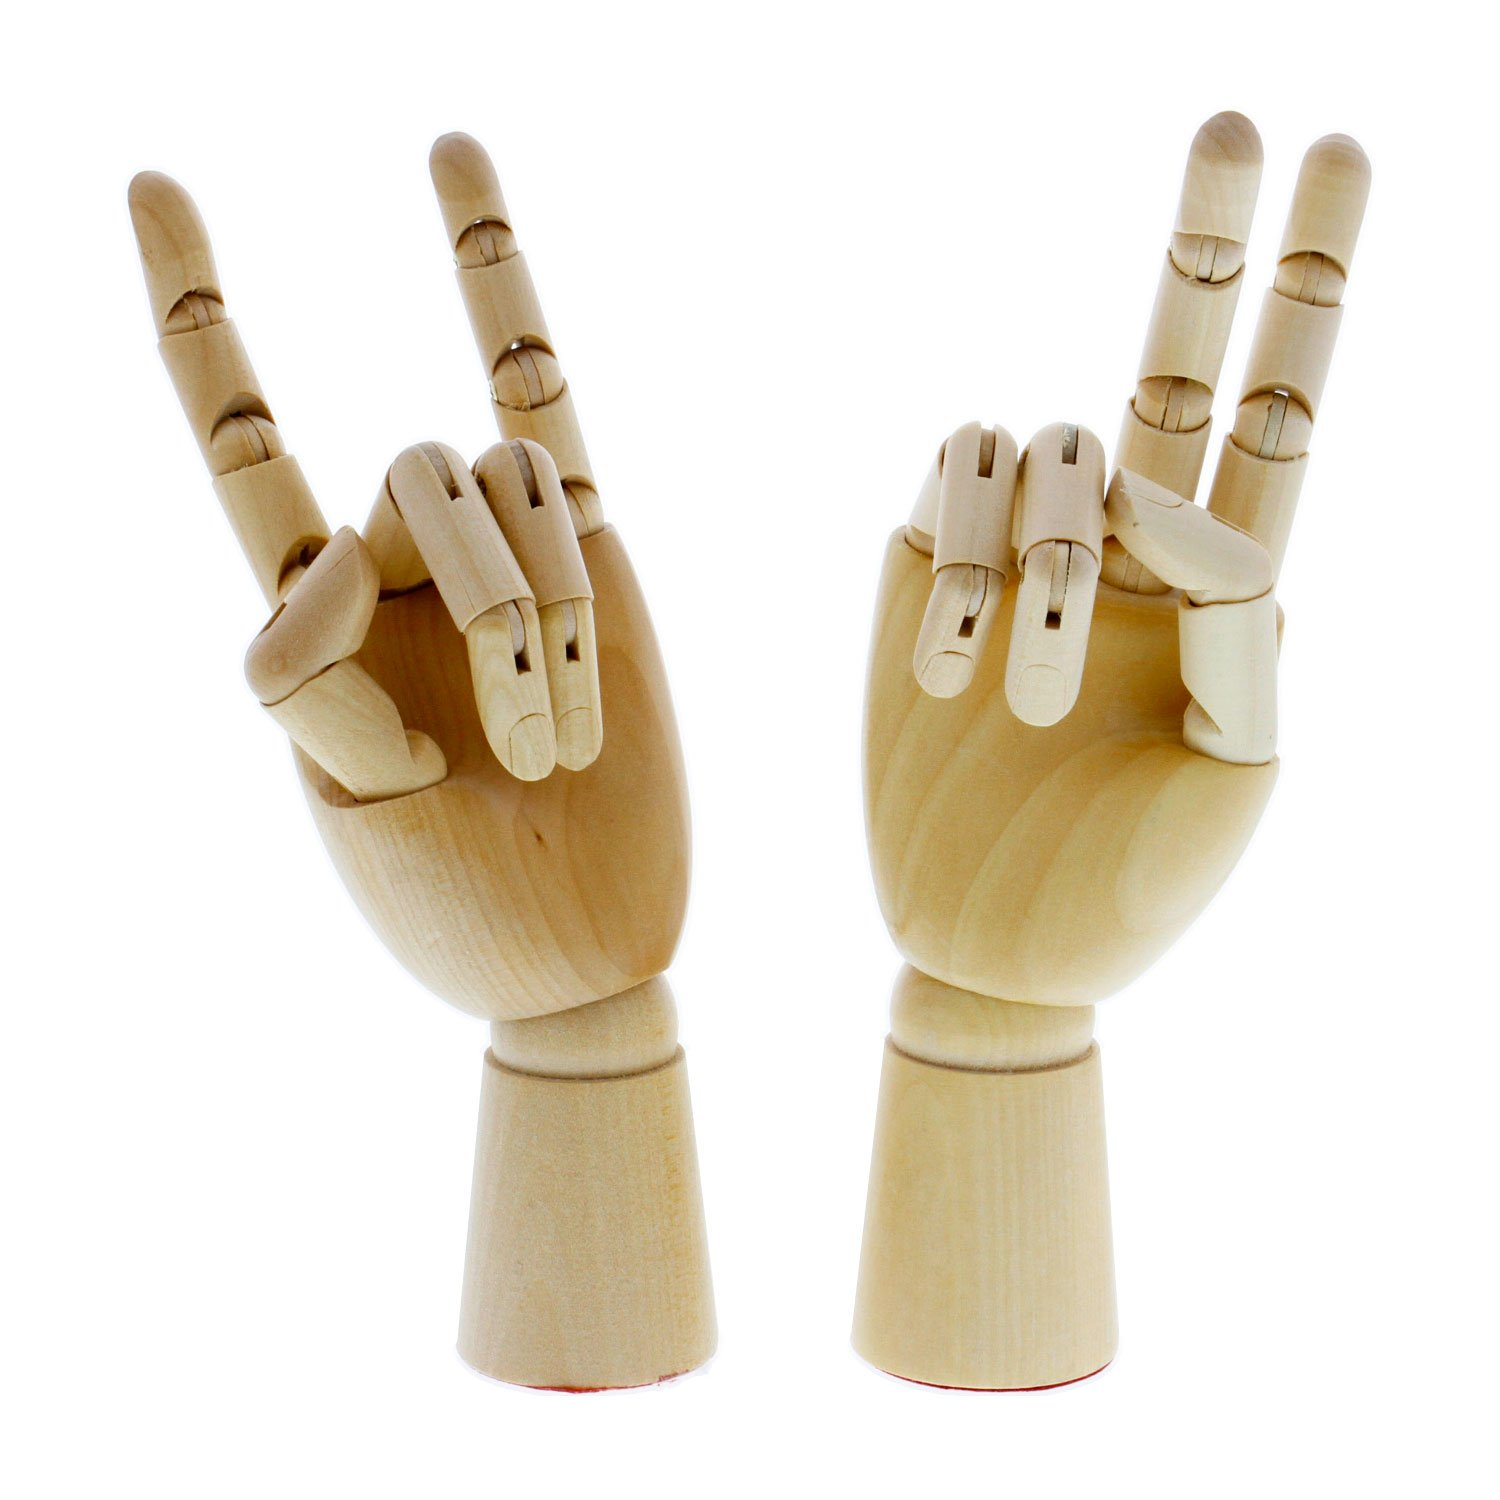 US Art Supply Artist Drawing Hand Manikin Articulated Wooden Mannequin (Choose Size & Hand Type Below) (7'' Pair of Left & Right)